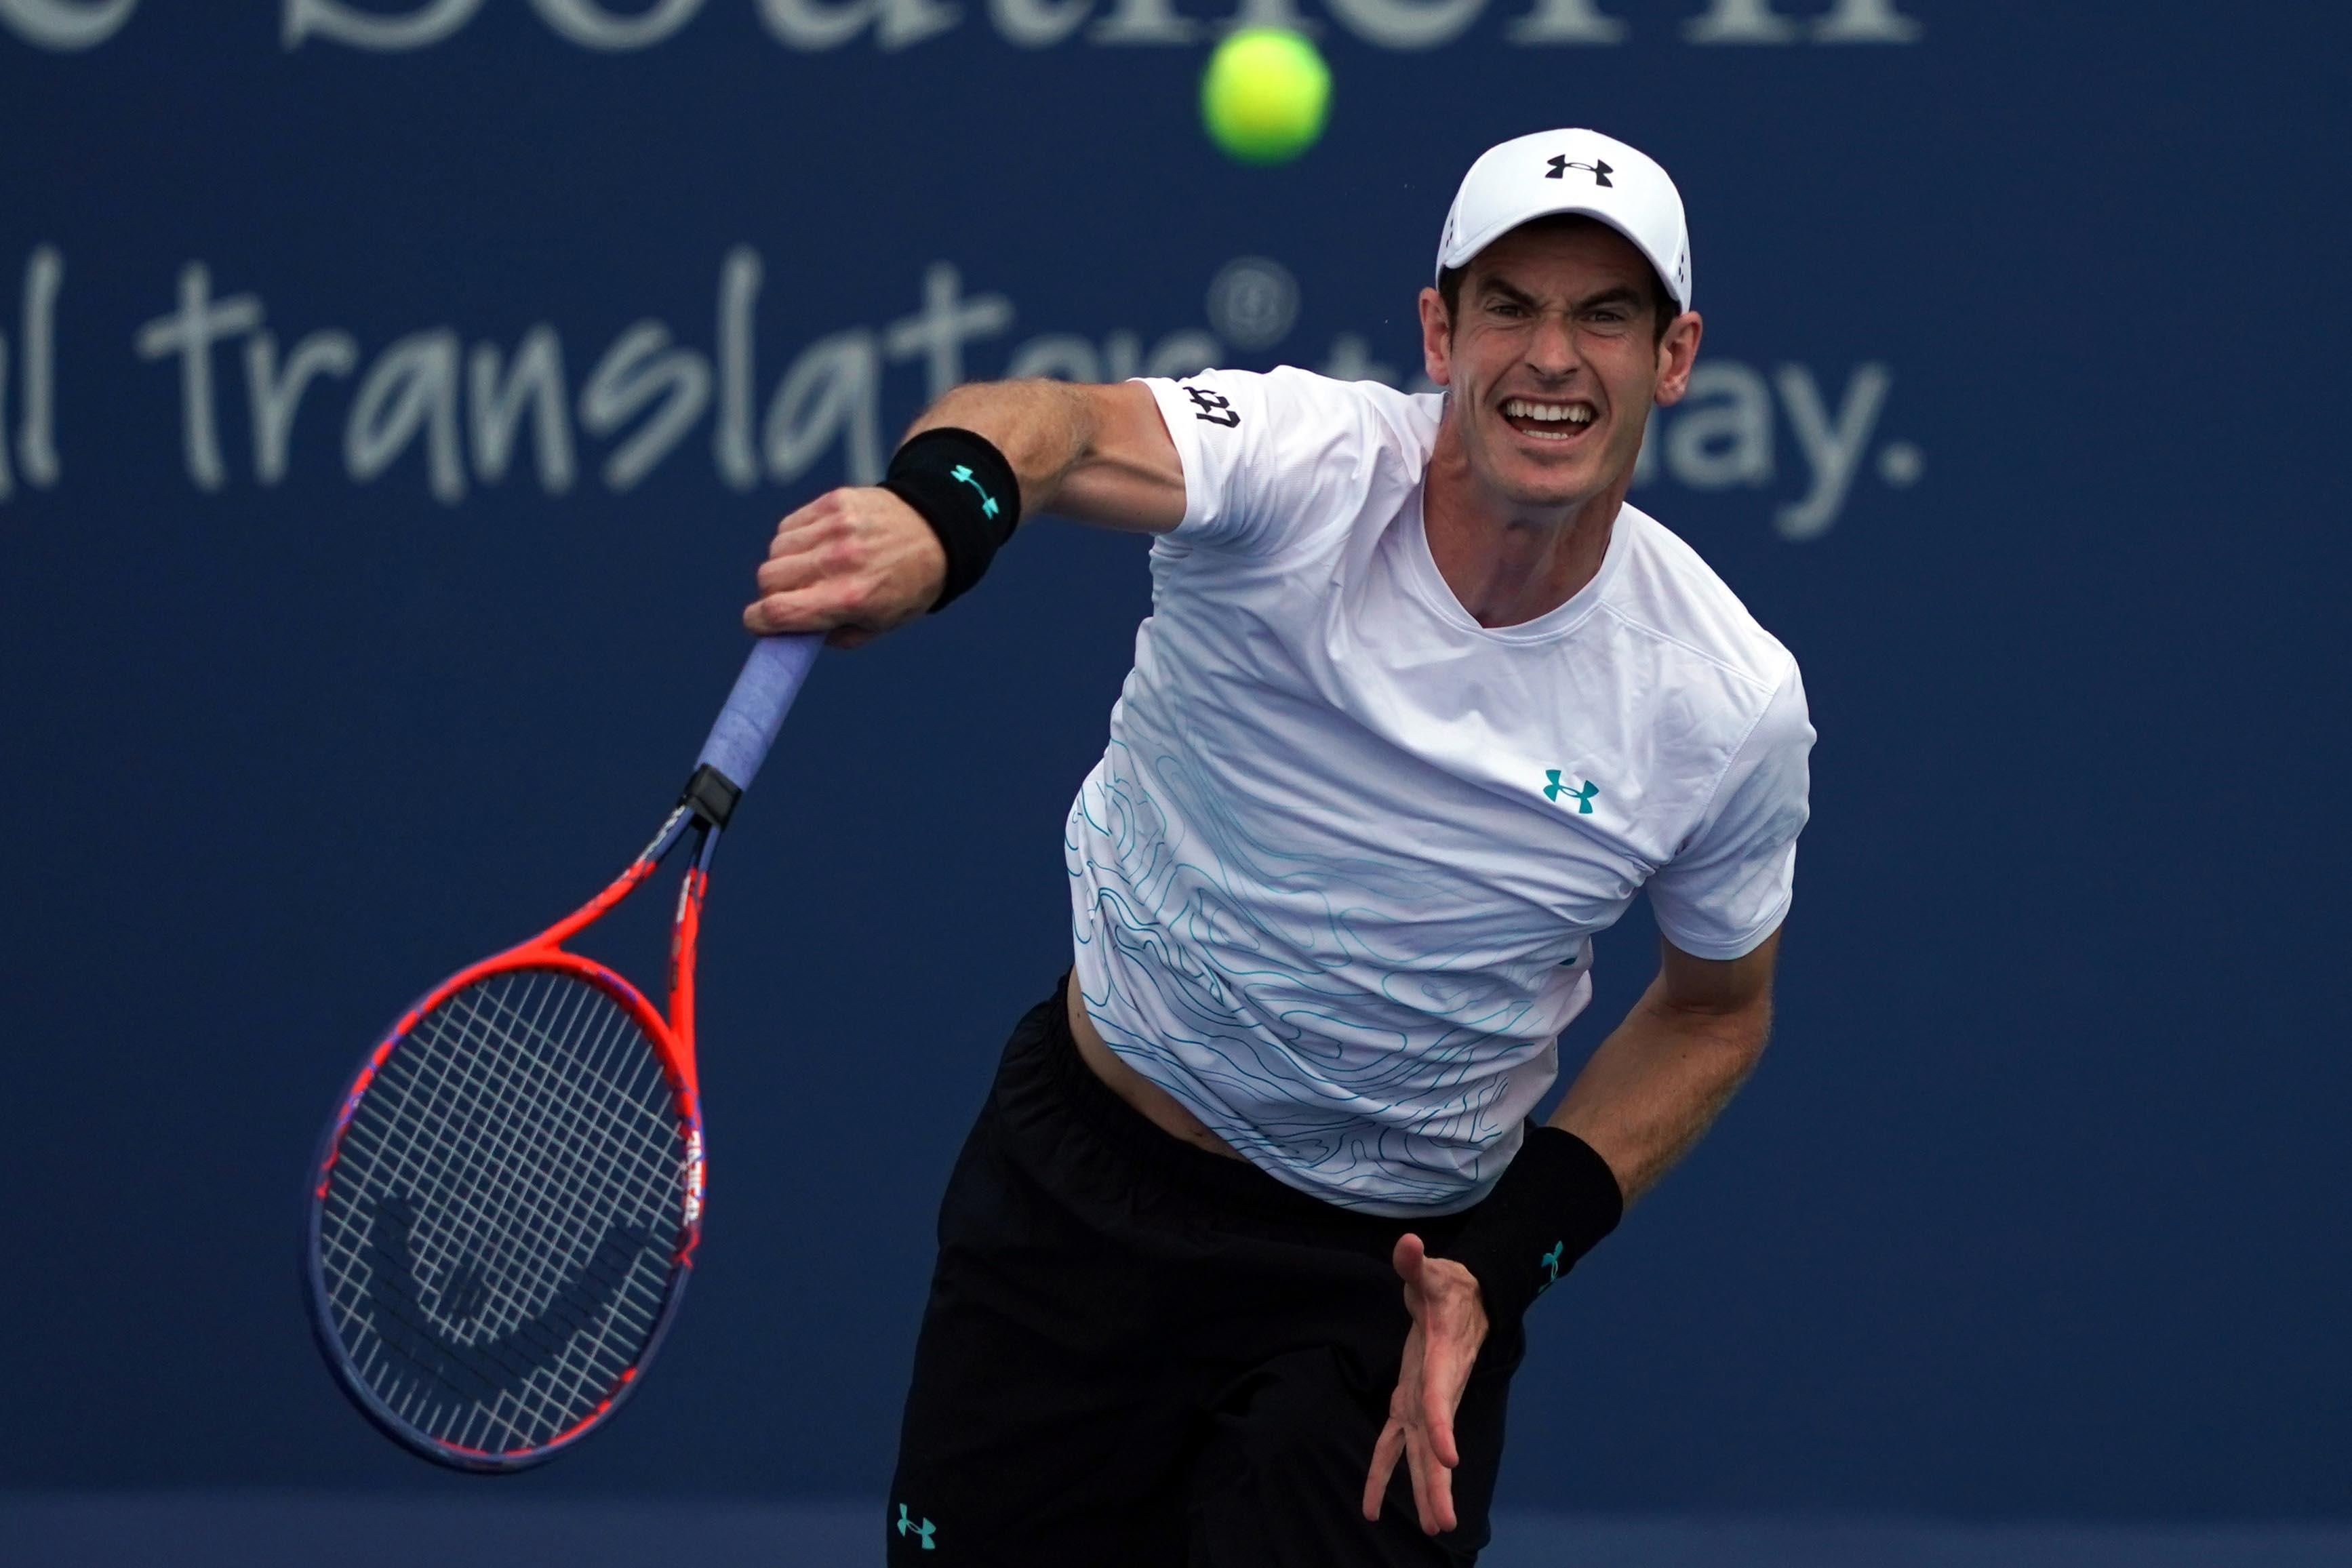 Andy Murray is bracing himself for his first grand slam appearance in 14 months